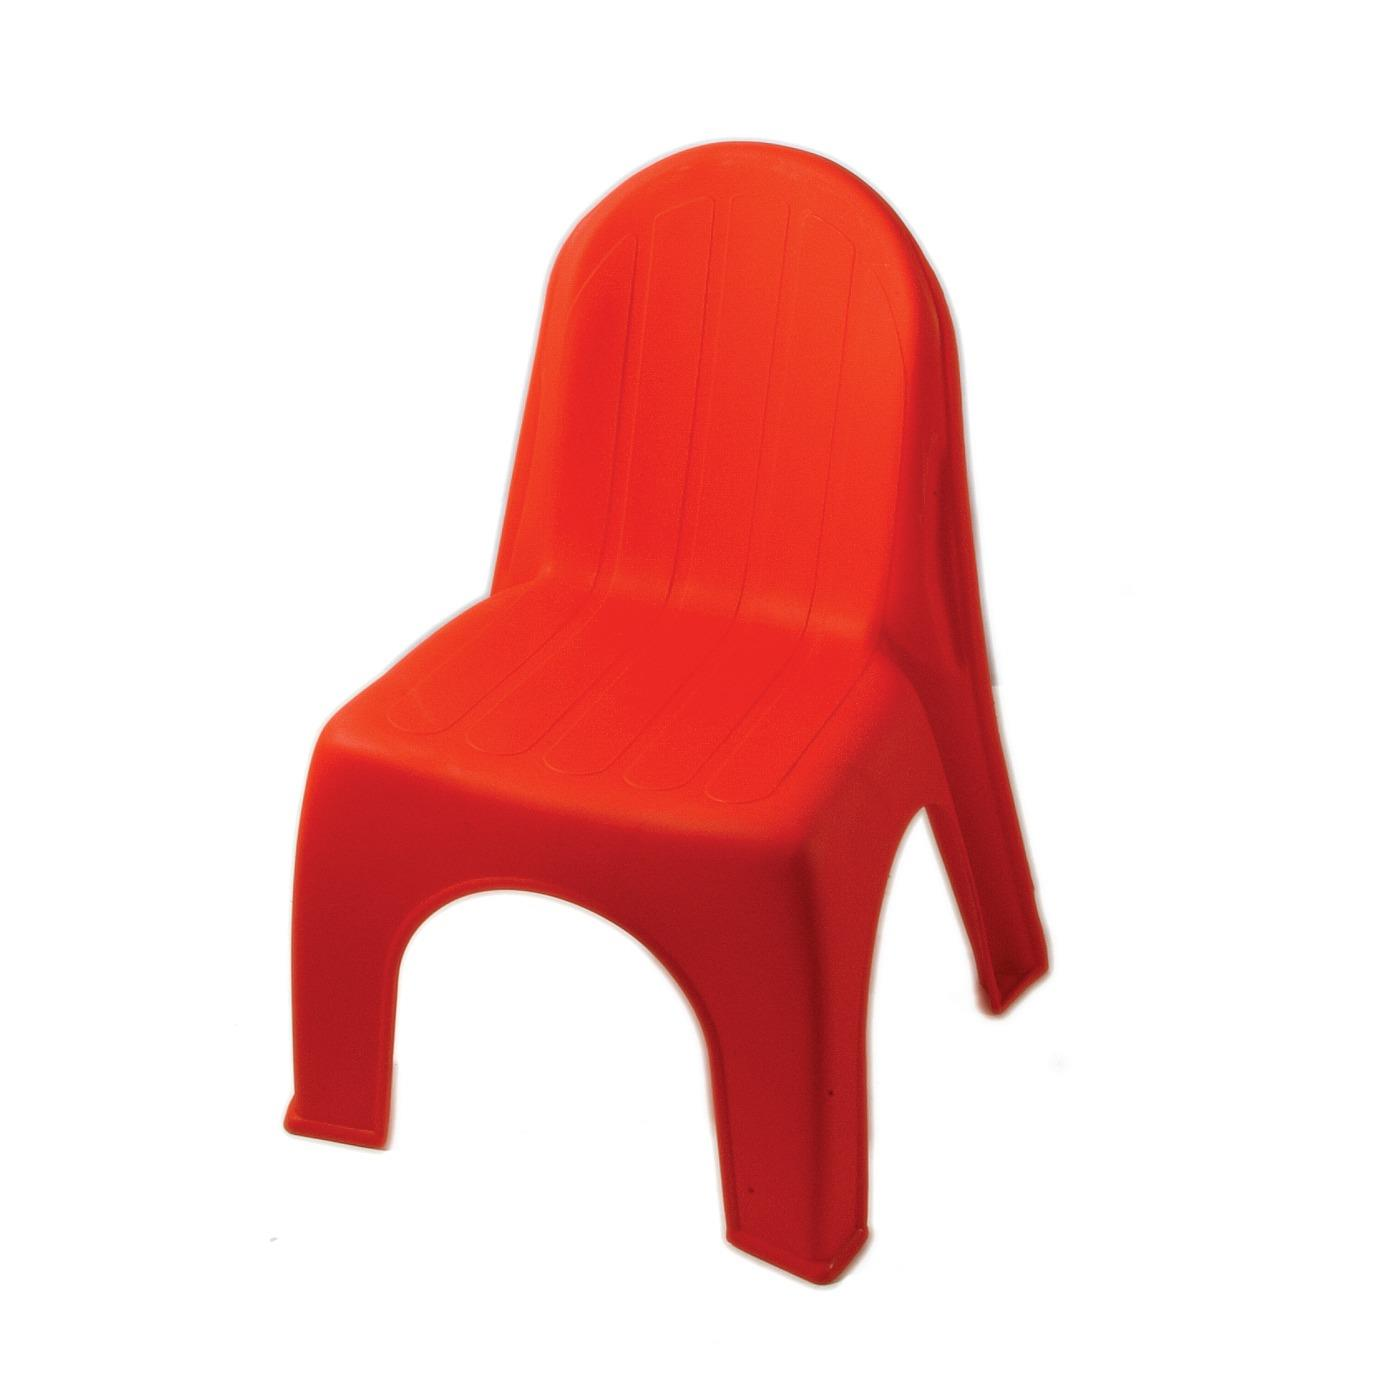 Plastic Children's Chair - Red